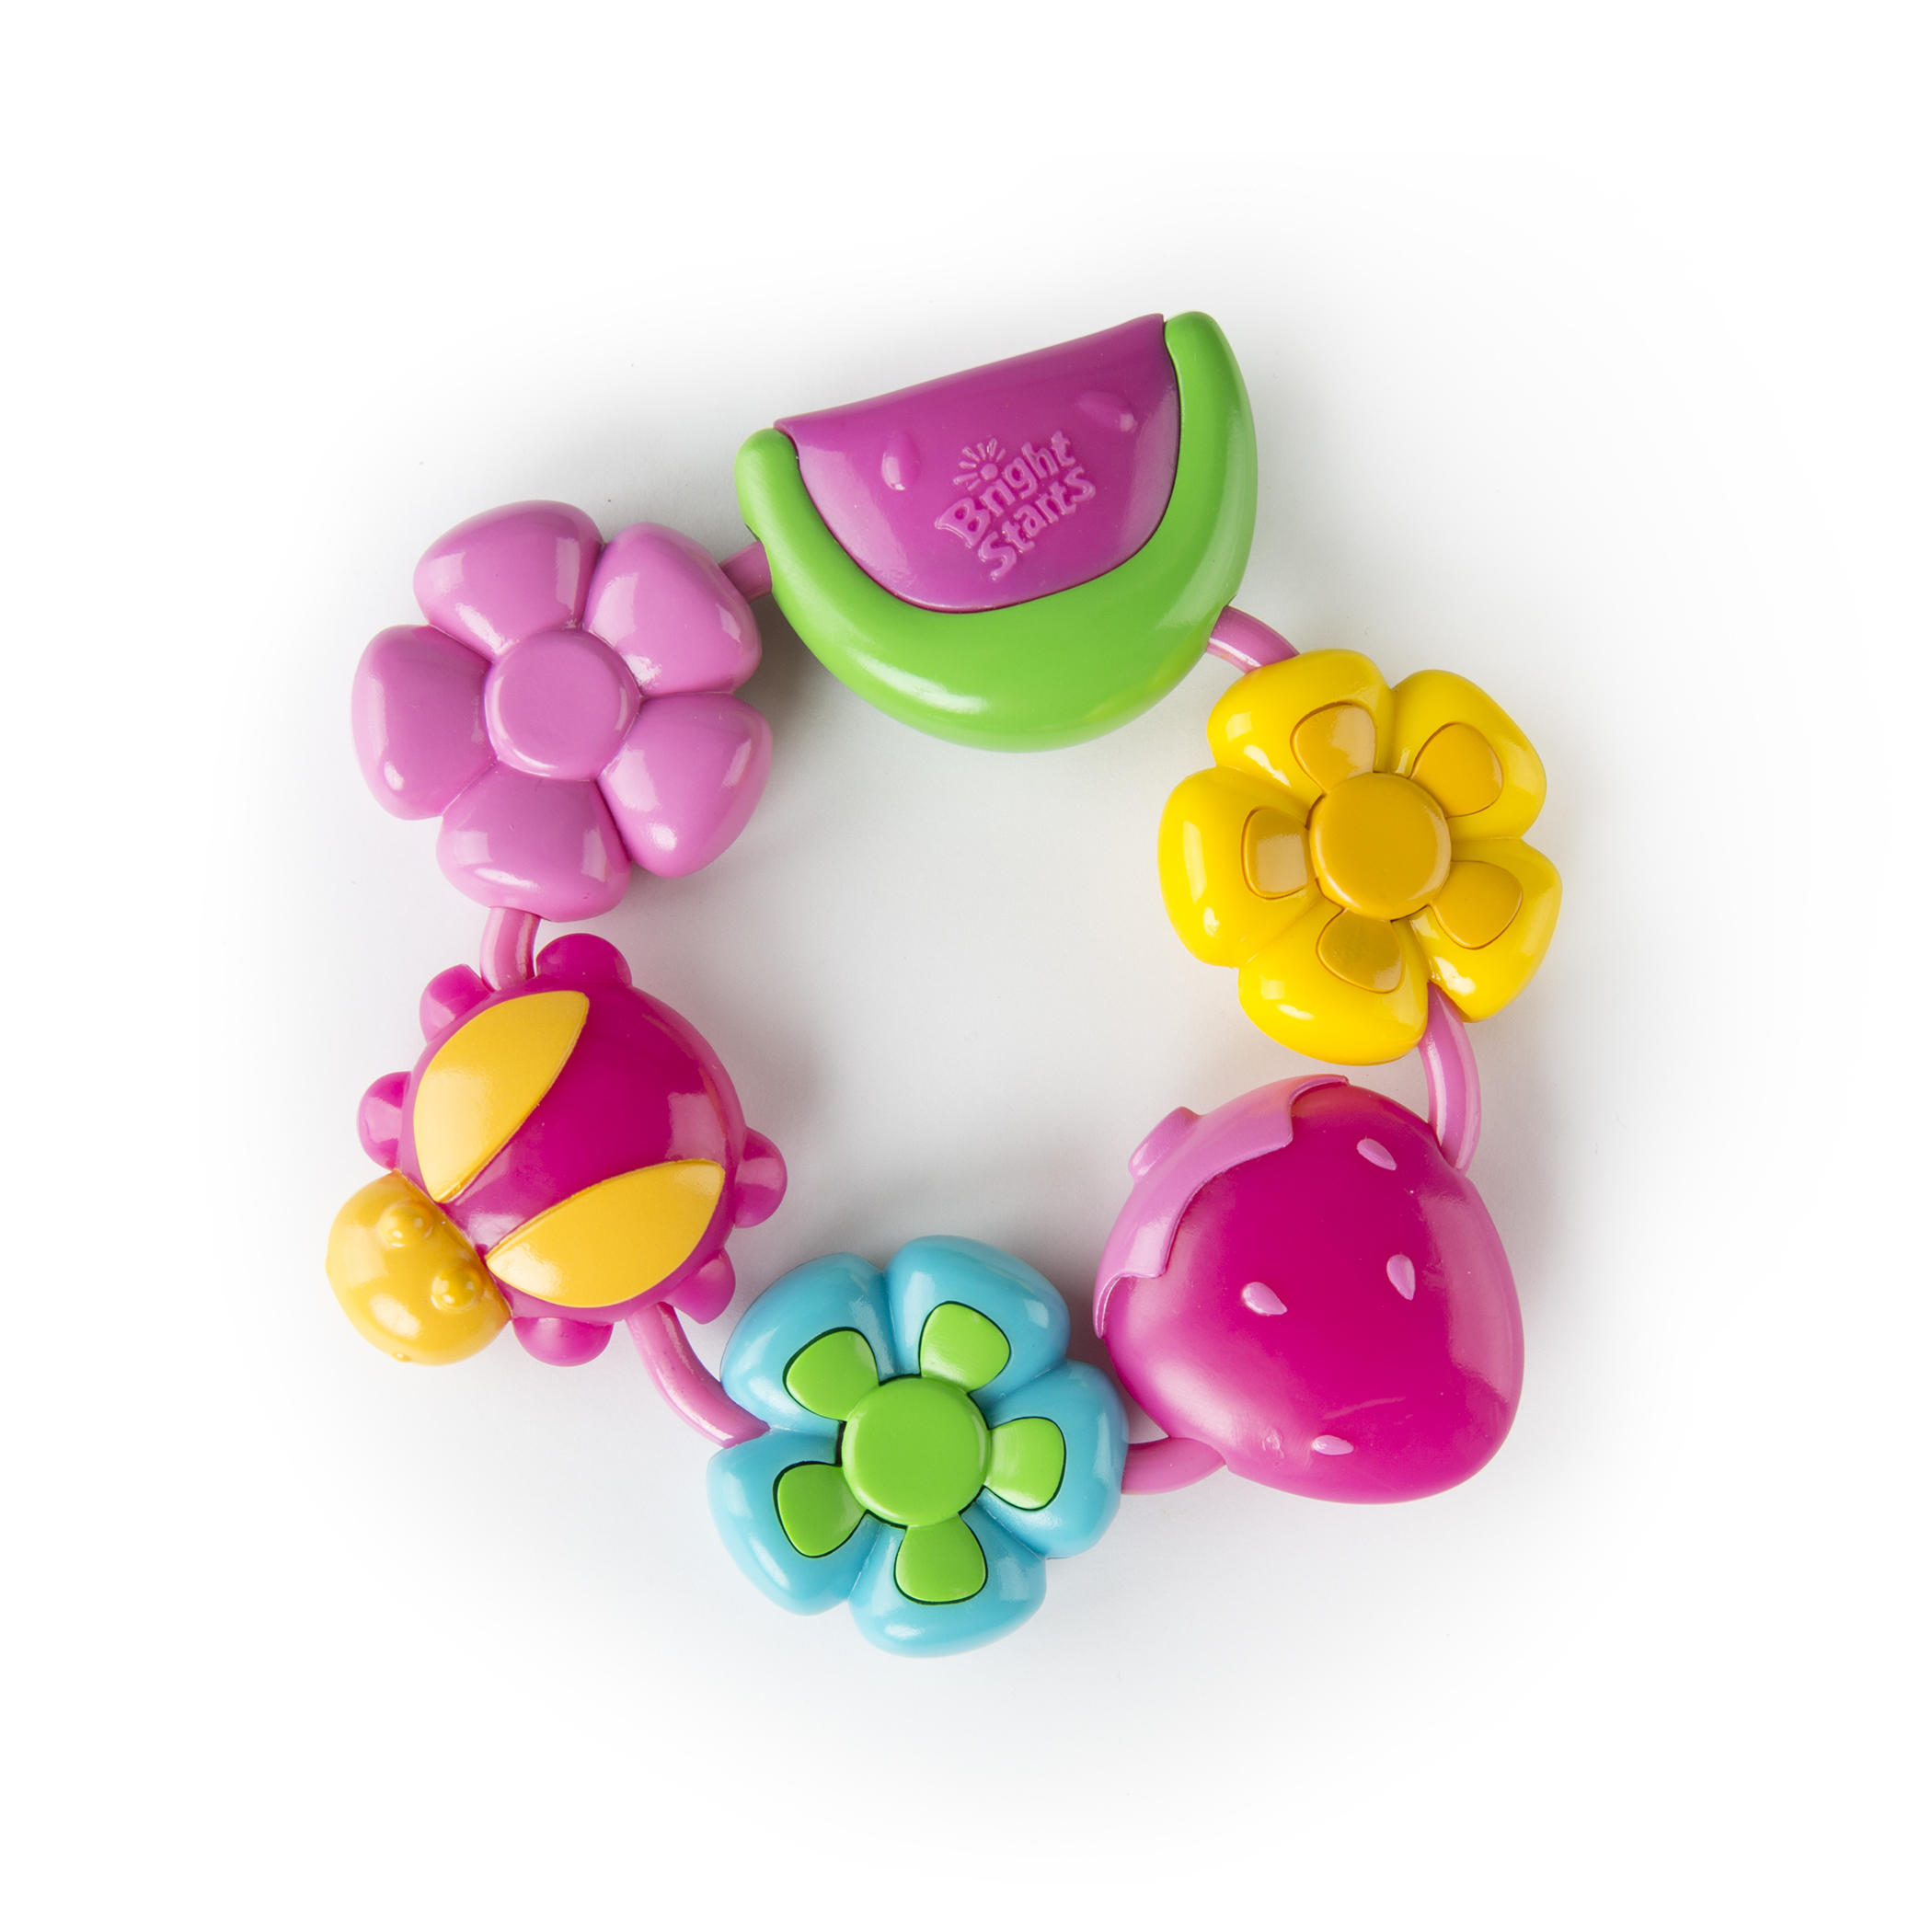 Bright Starts Buggie Bites Teether Teether Toy